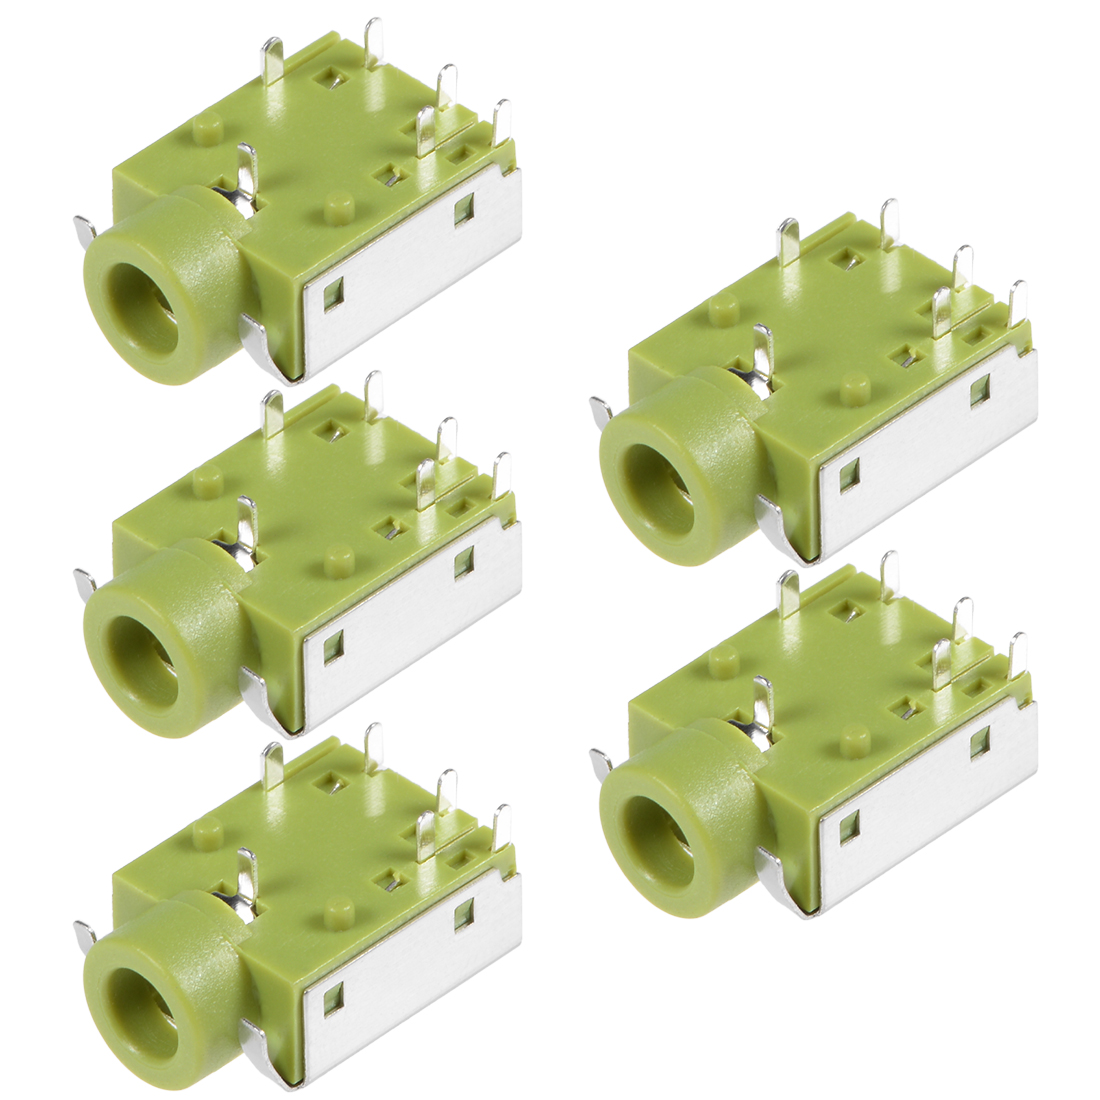 PCB Mount 3.5mm 6 Pin Socket Headphone Audio Video Connector PJ343 Green 5Pcs